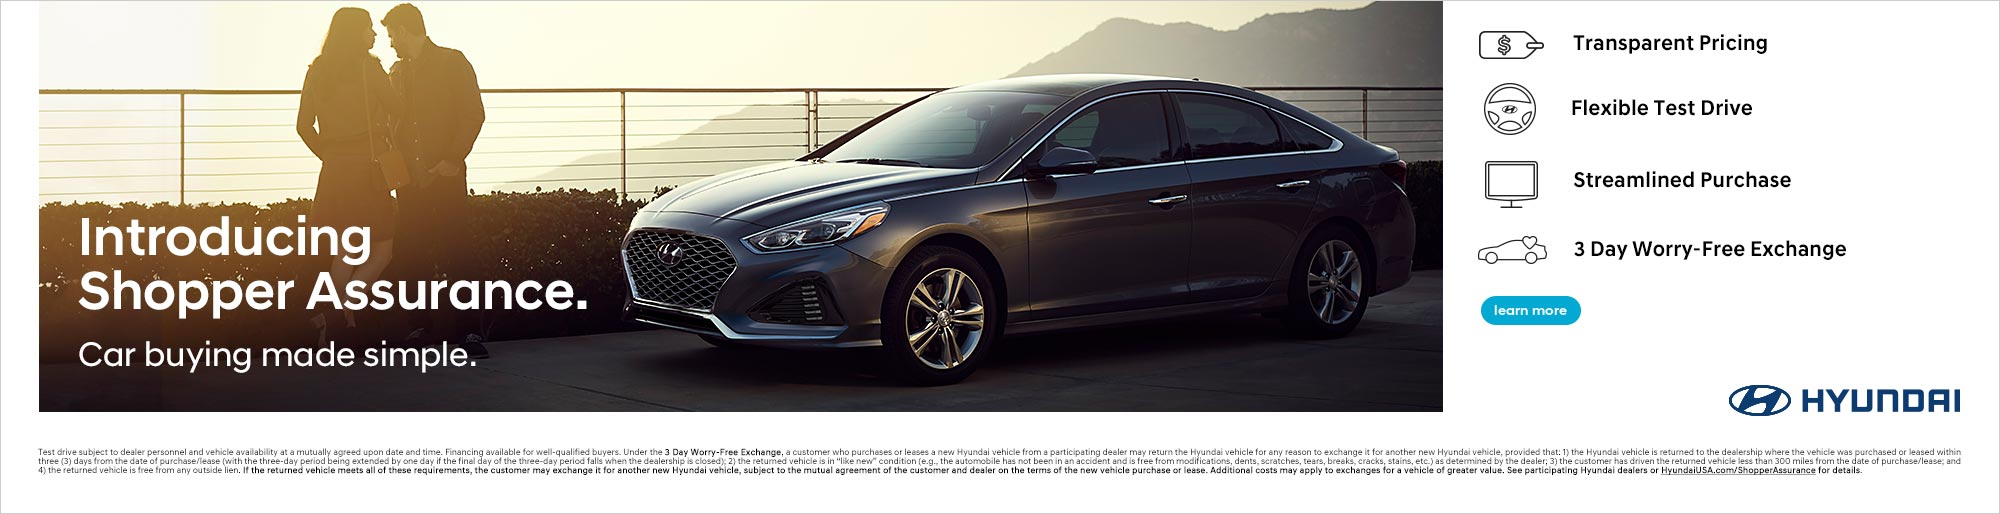 Hyundai Car Shopper Assurance, Learn More